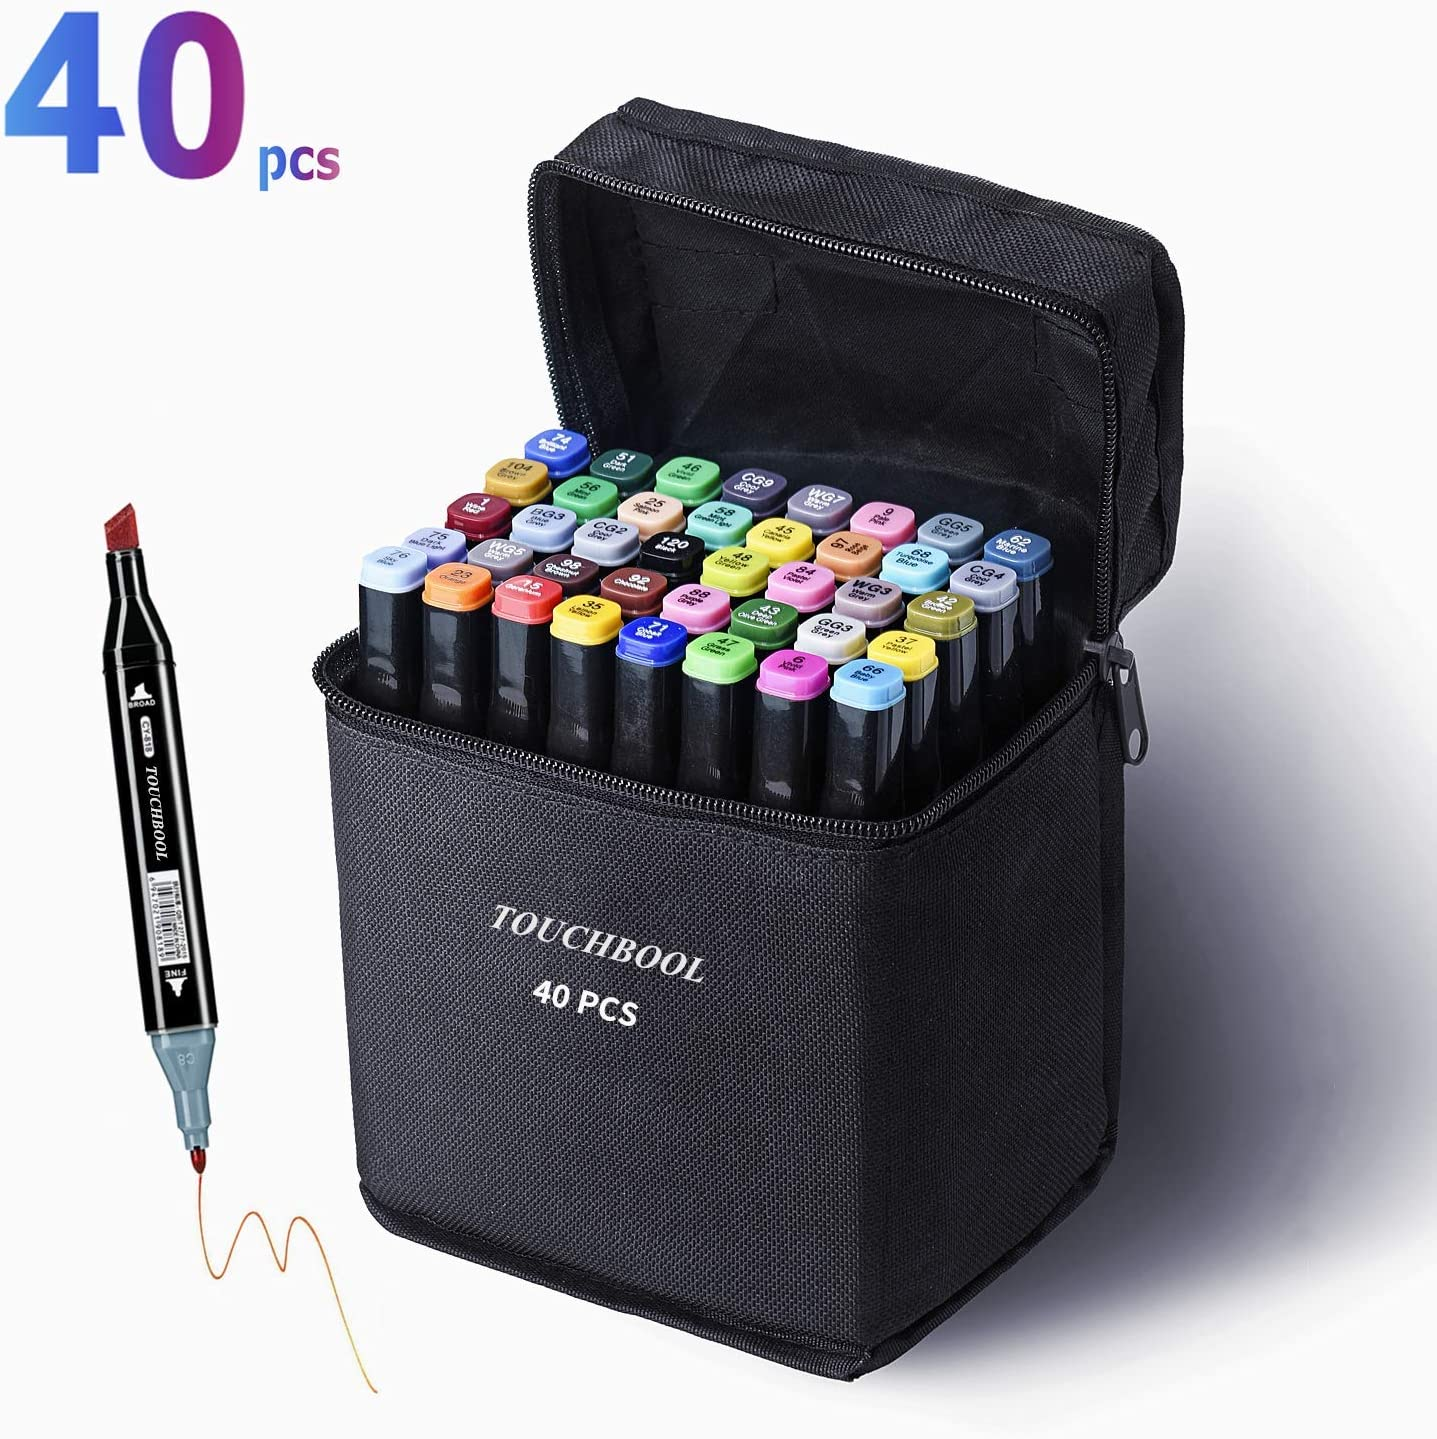 Amazon Com 40 Colors Drawing Alcohol Art Markers Pen Set For Kids Adult Coloring Book Artist Alcohol Pen Dual Tip Art Markers Twin Permanent Markers Drawing Illustration 40 Color Black Shell